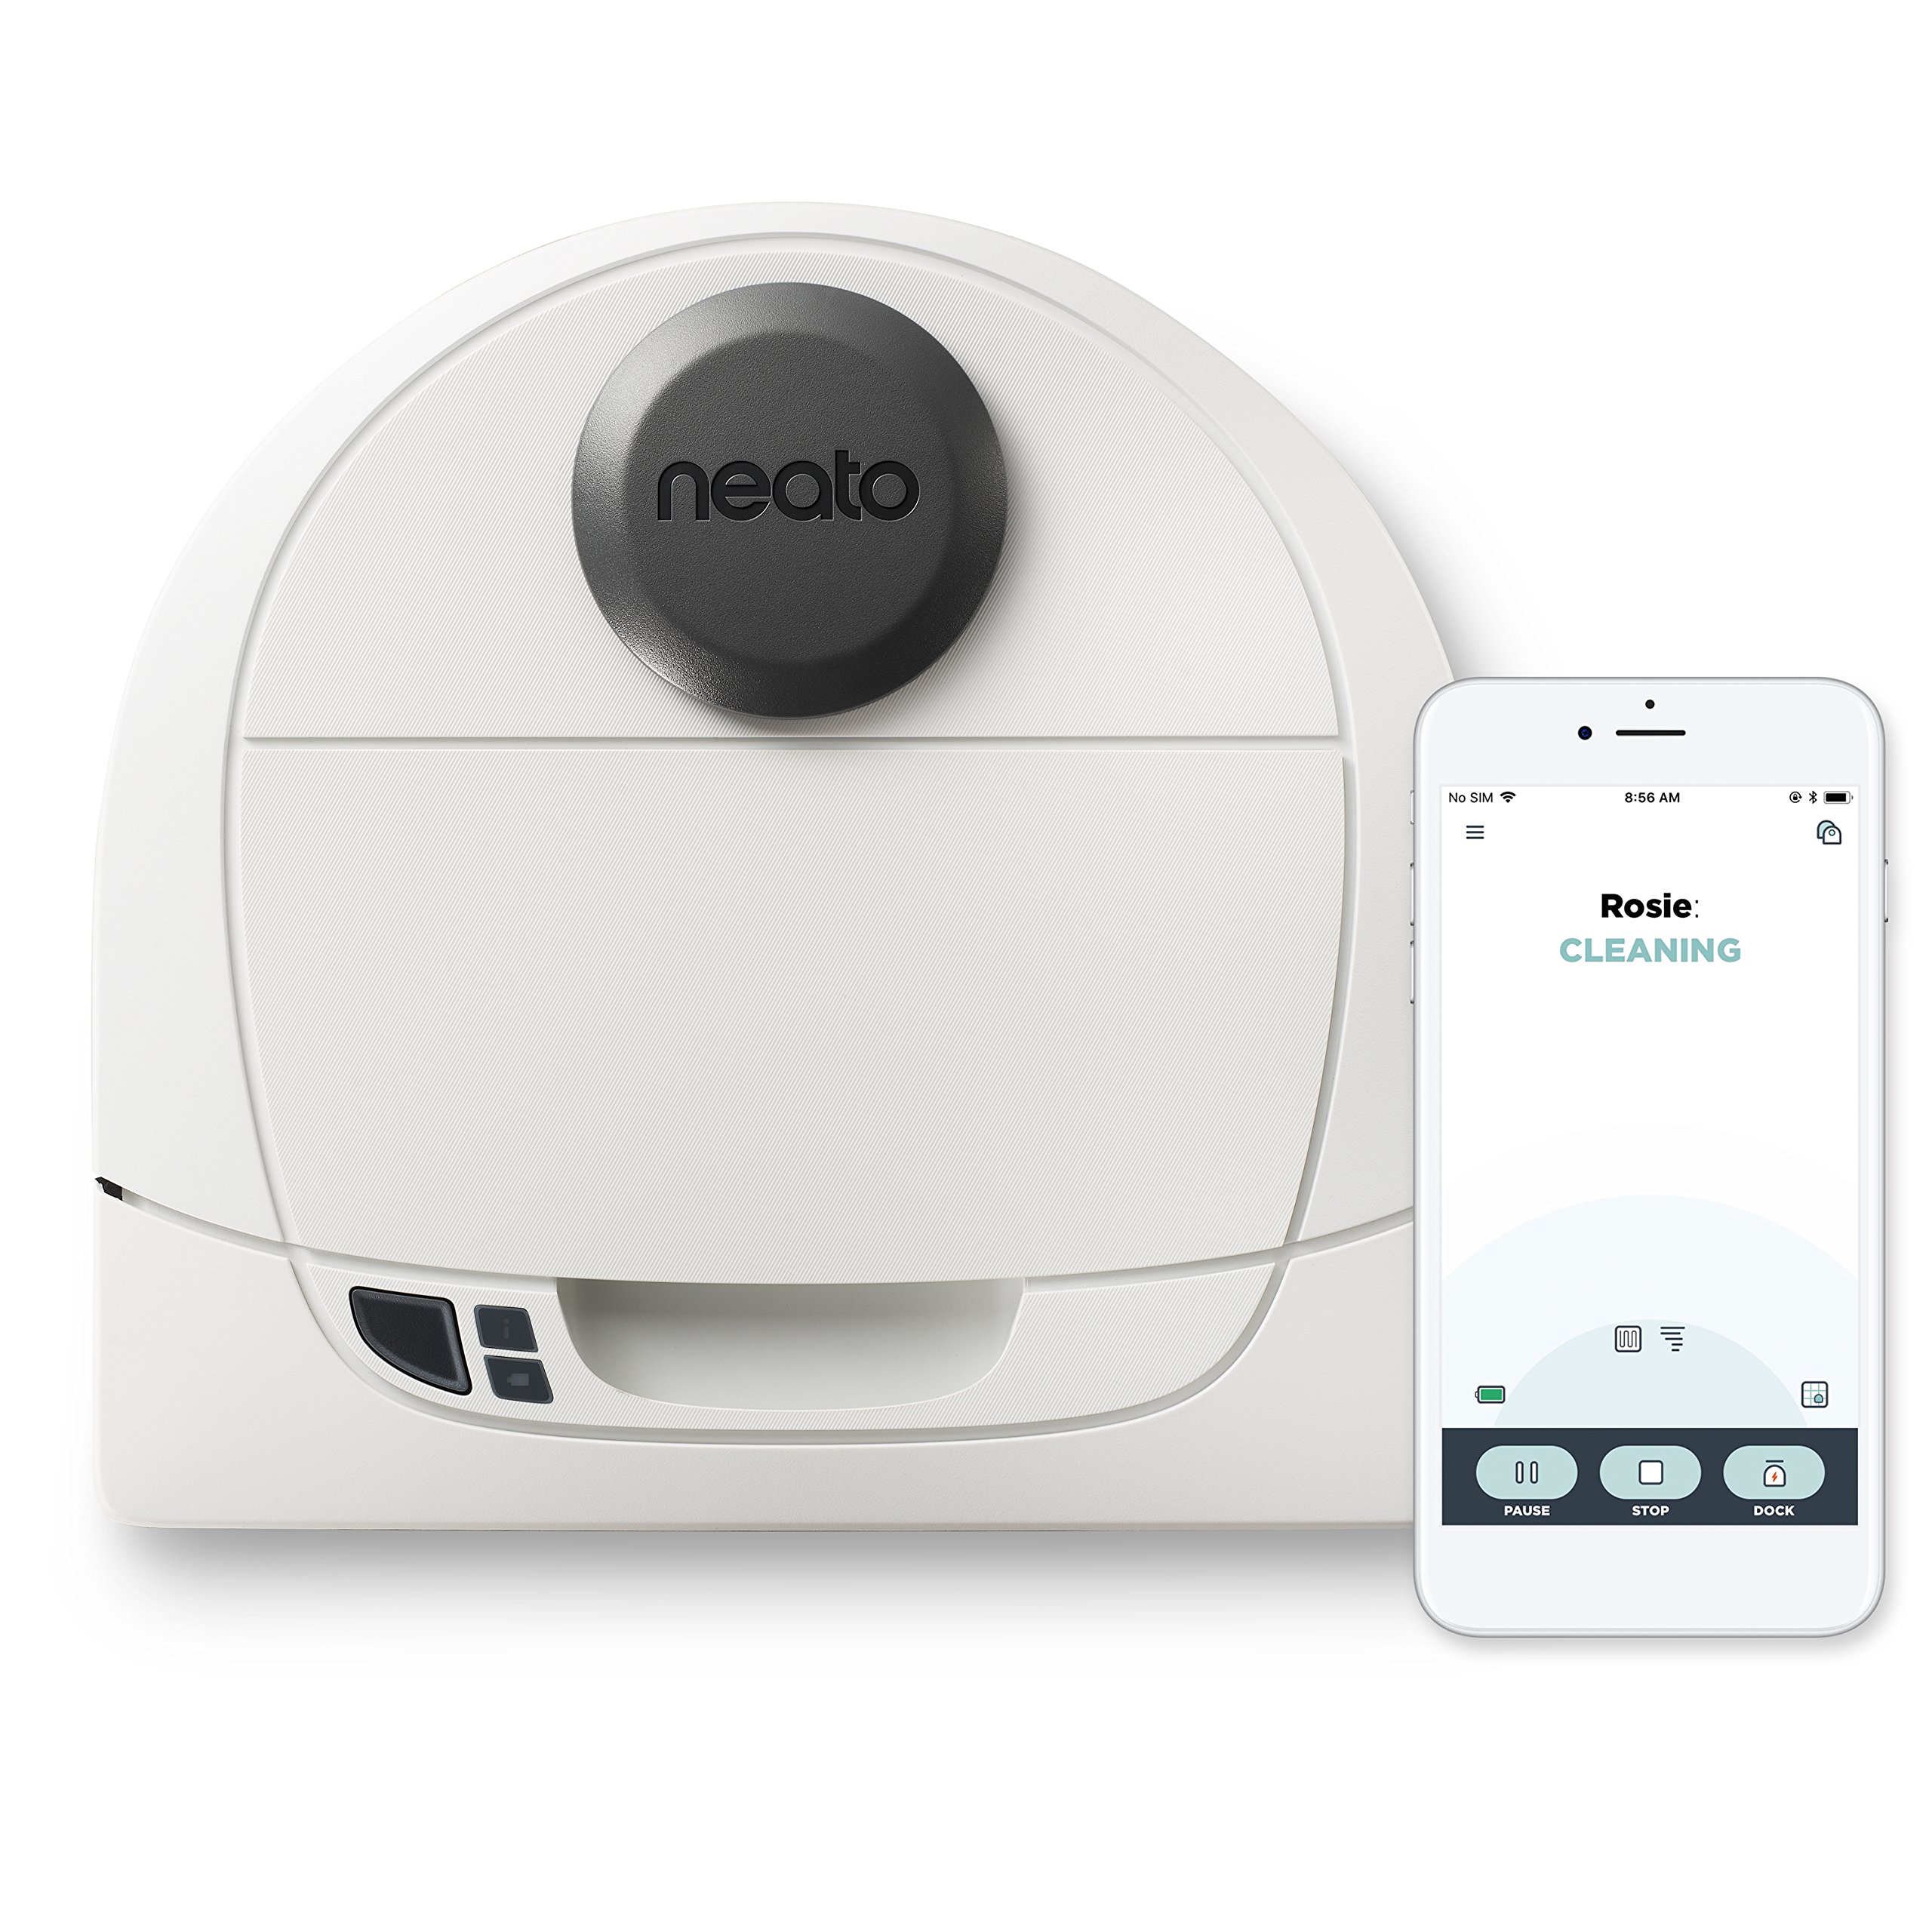 Neato Robotics Botvac D3 Wi-Fi Connected Laser Navigating Robot Vacuum, Compatible with Amazon Alexa, White by Neato Robotics